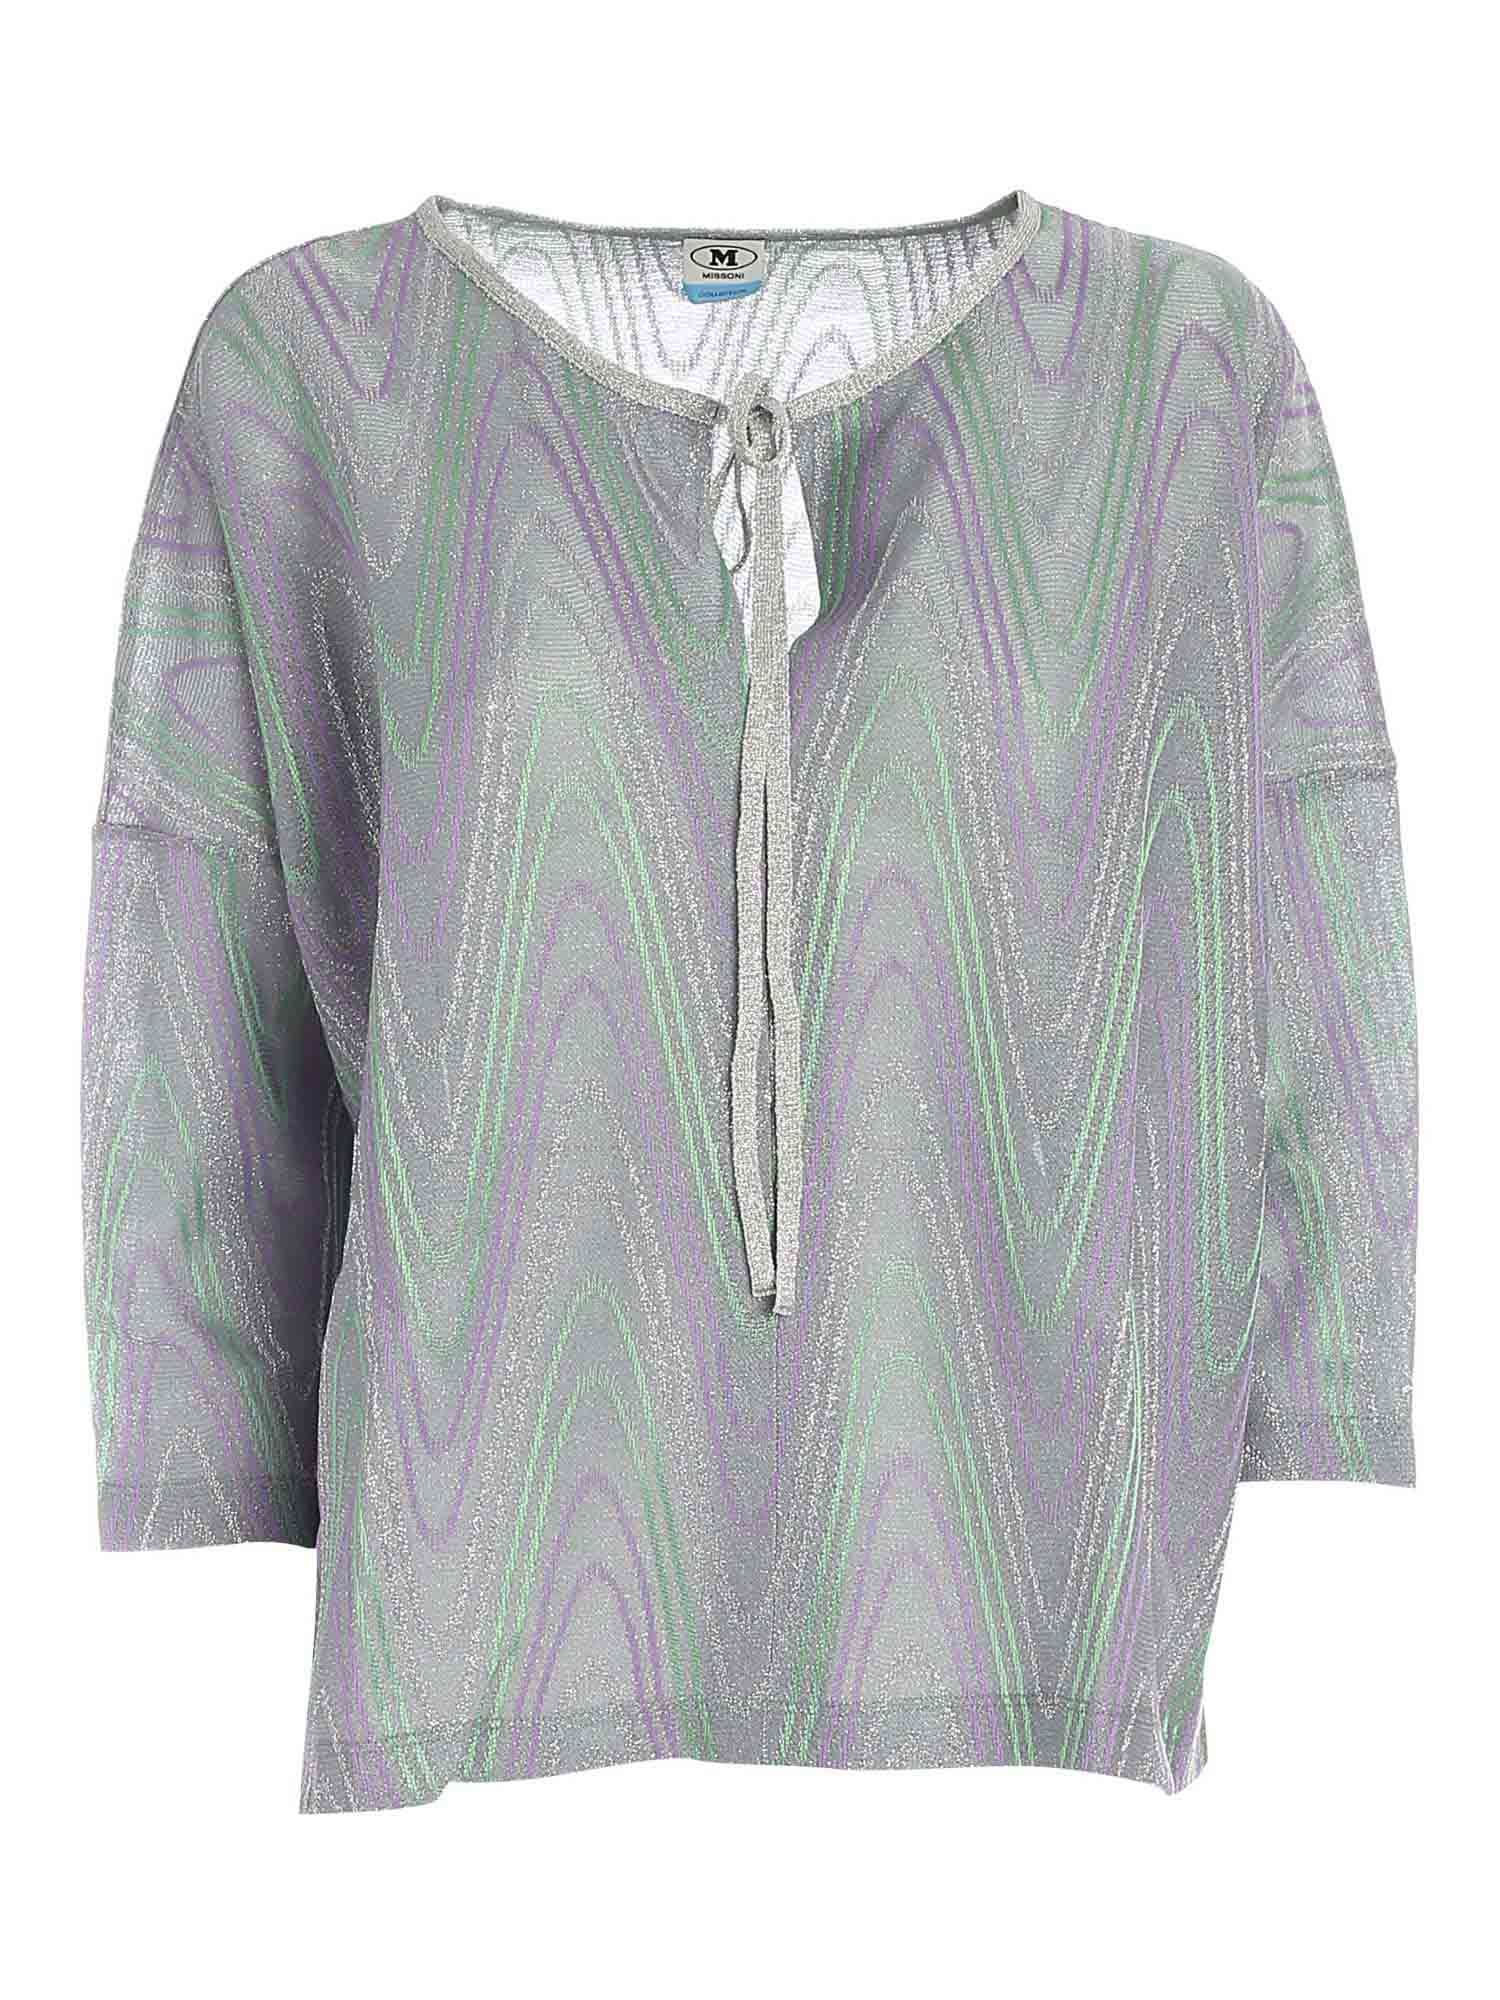 M Missoni LAM BOXY BLOUSE IN GREEN, PURPLE AND SILVER